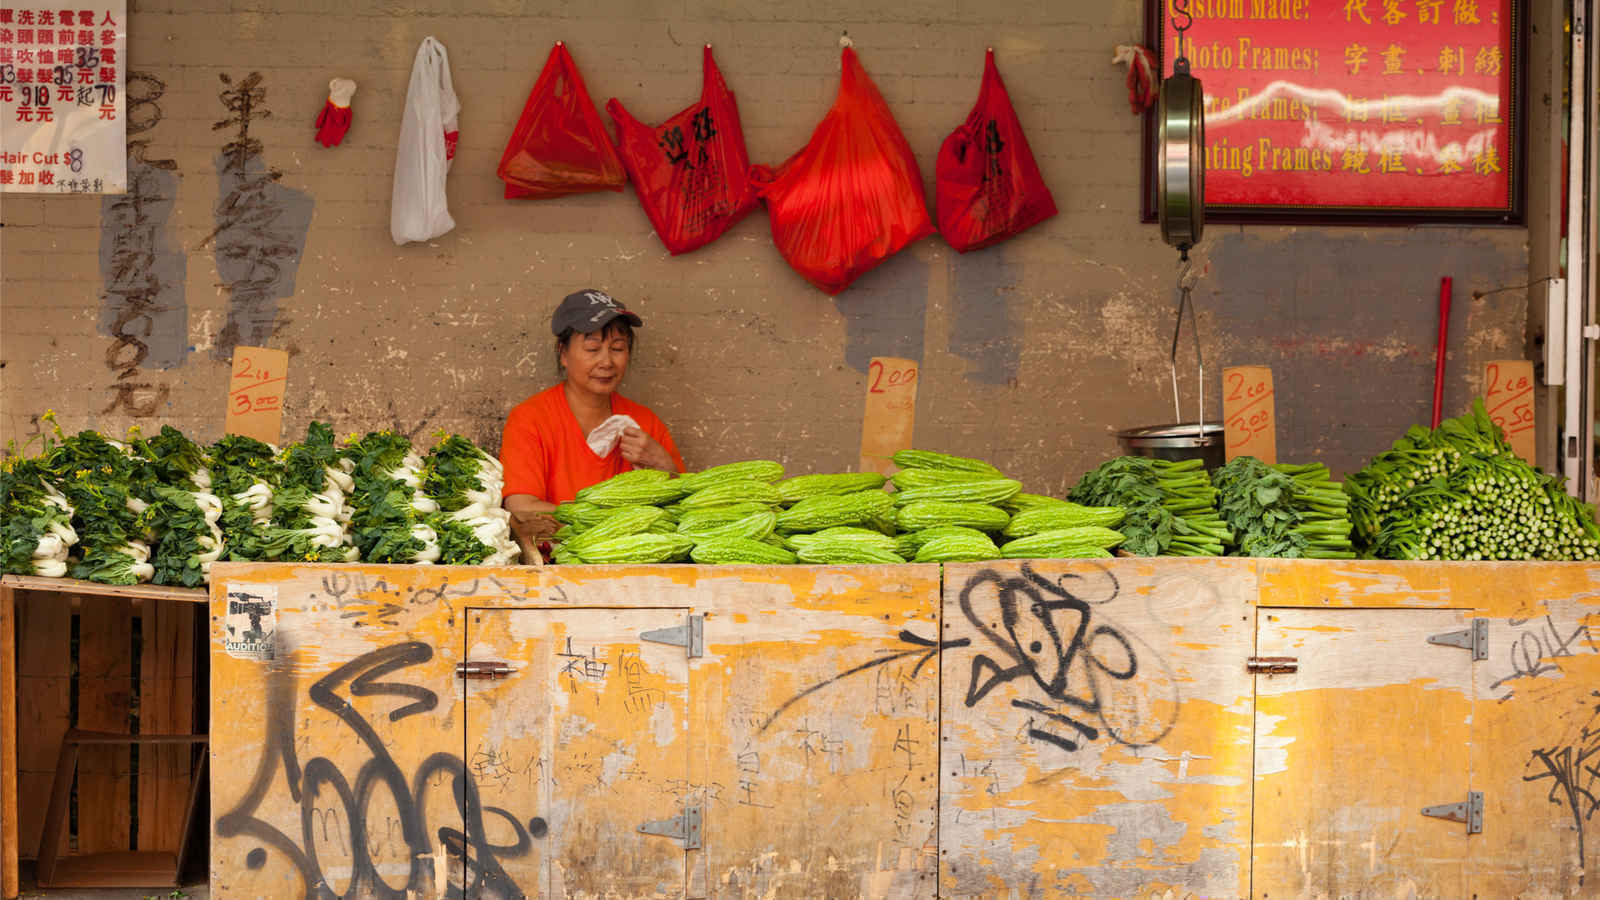 Vegetable stand in Chinatown New York City